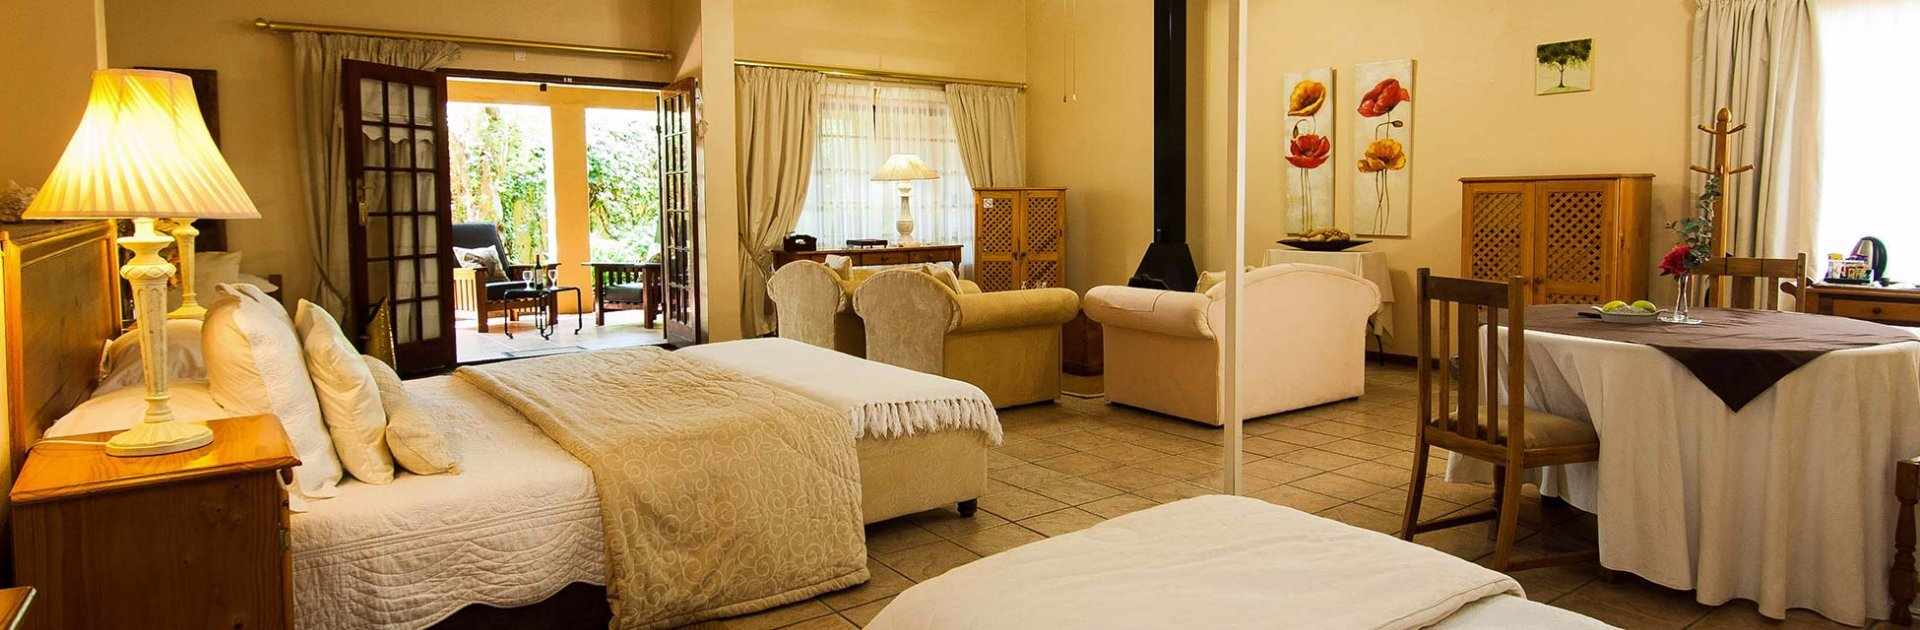 Addo-accommodation-rates-bed-breakfast